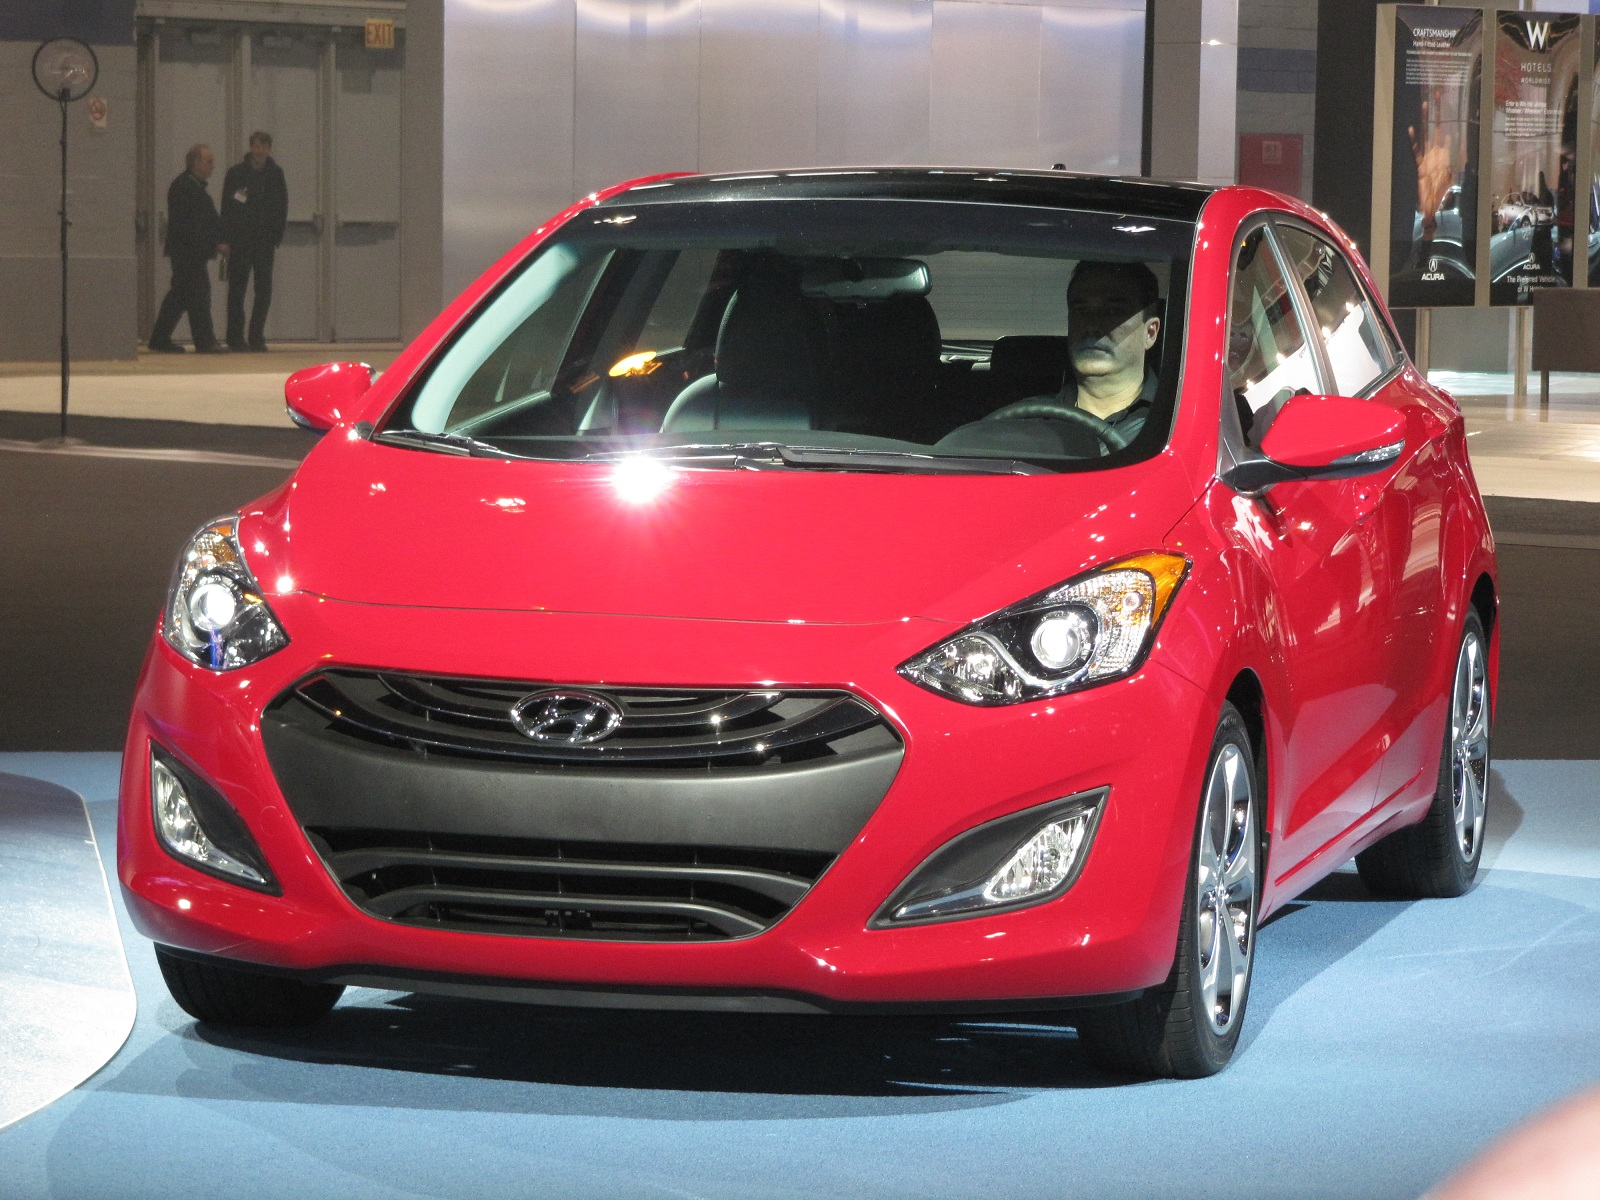 2013 Hyundai Elantra Coupe GT 40MPG Highway Less Than $20k